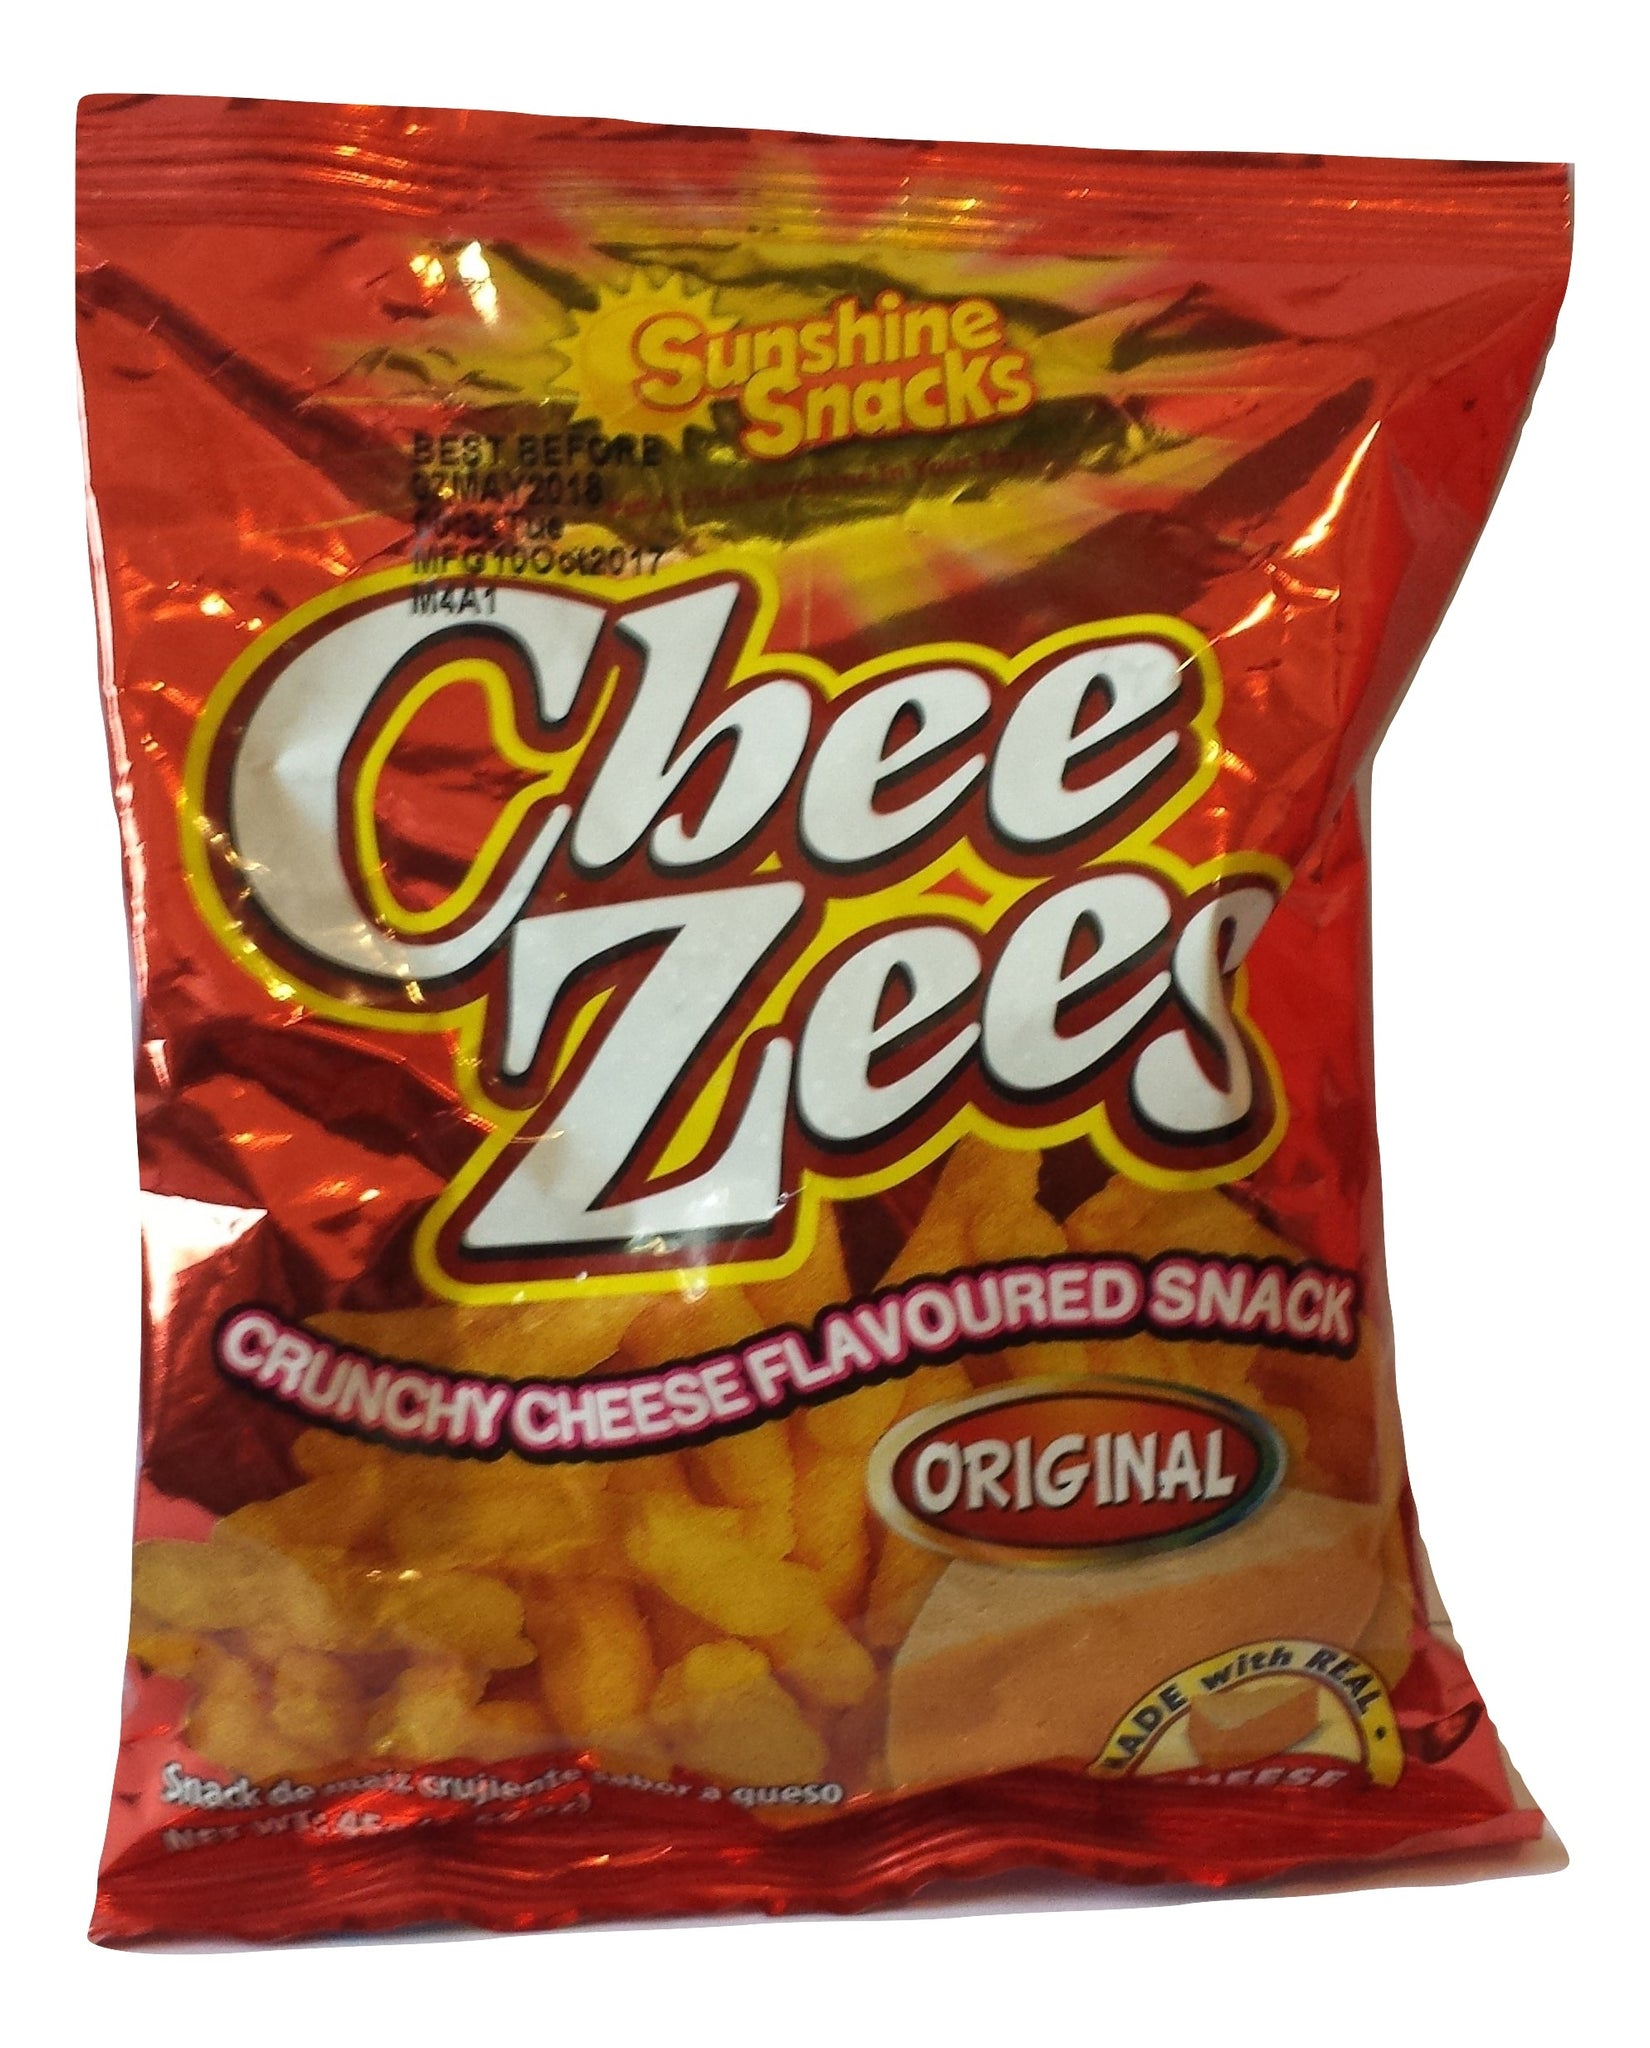 CheeZees Cheese Snack (Small version)